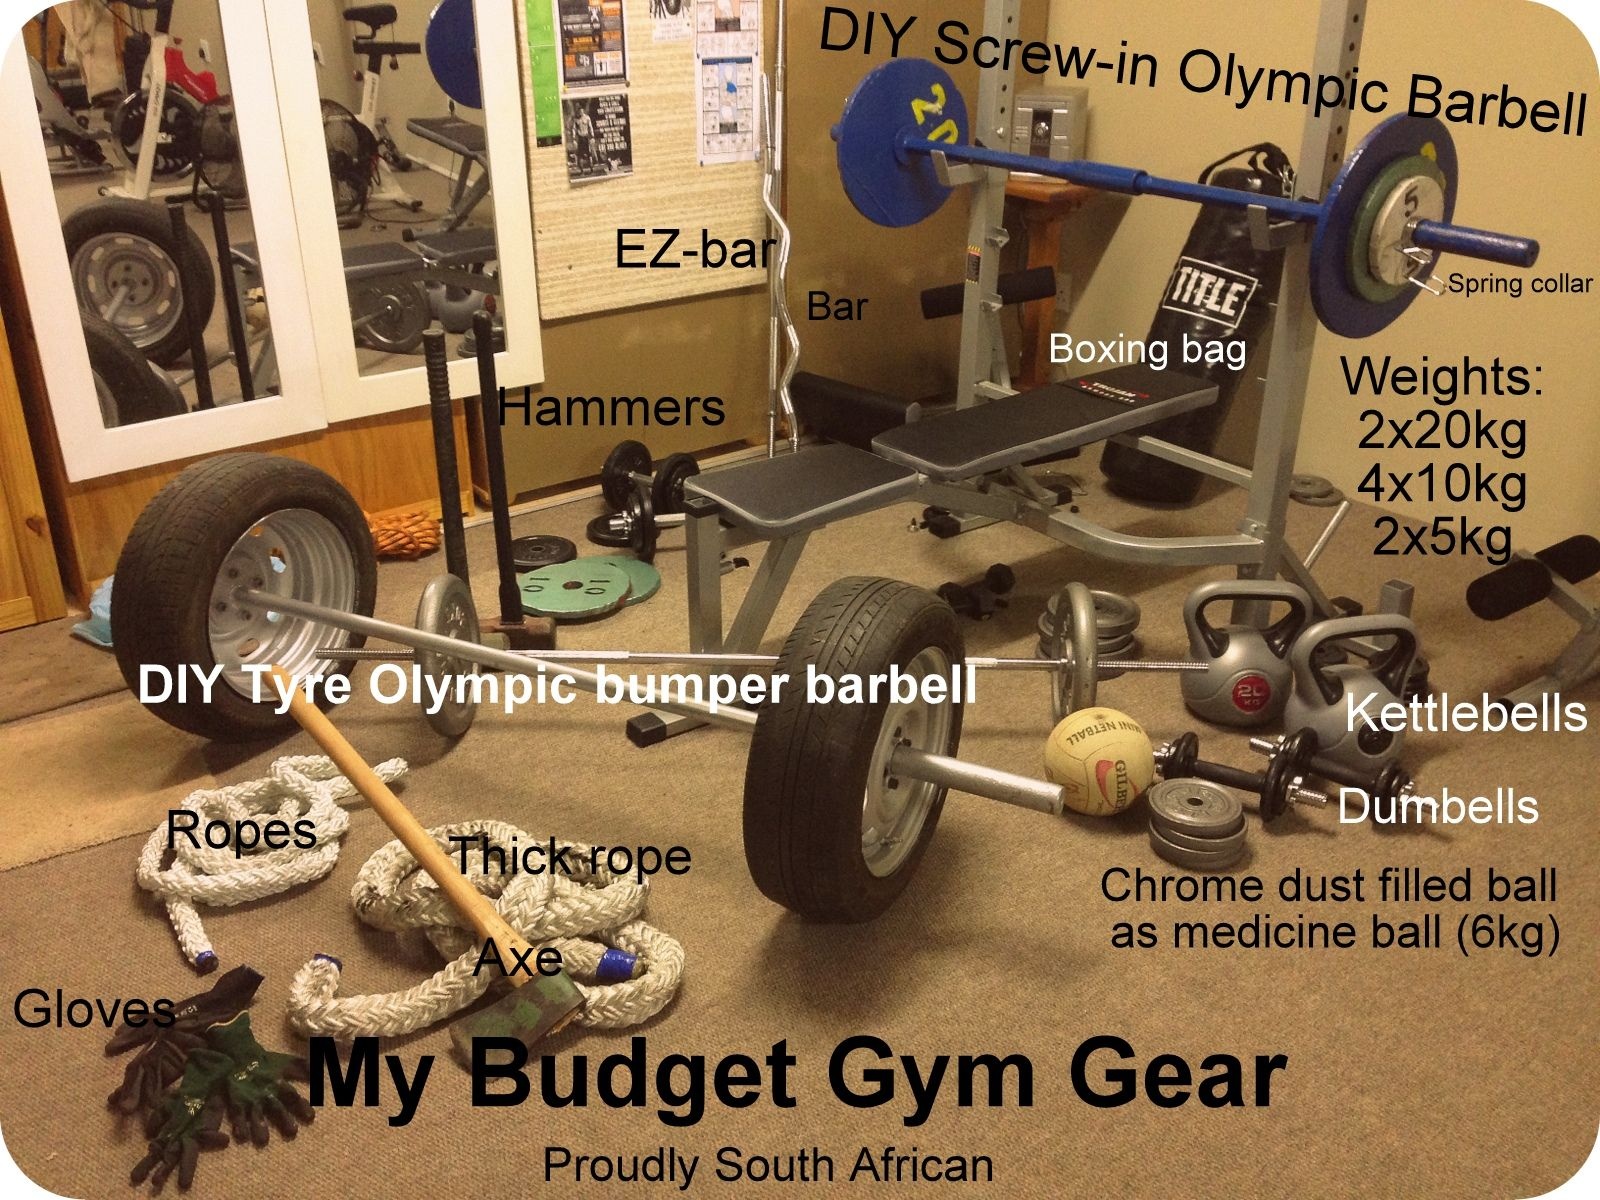 My home gym on a budget diy bumper barbell compact